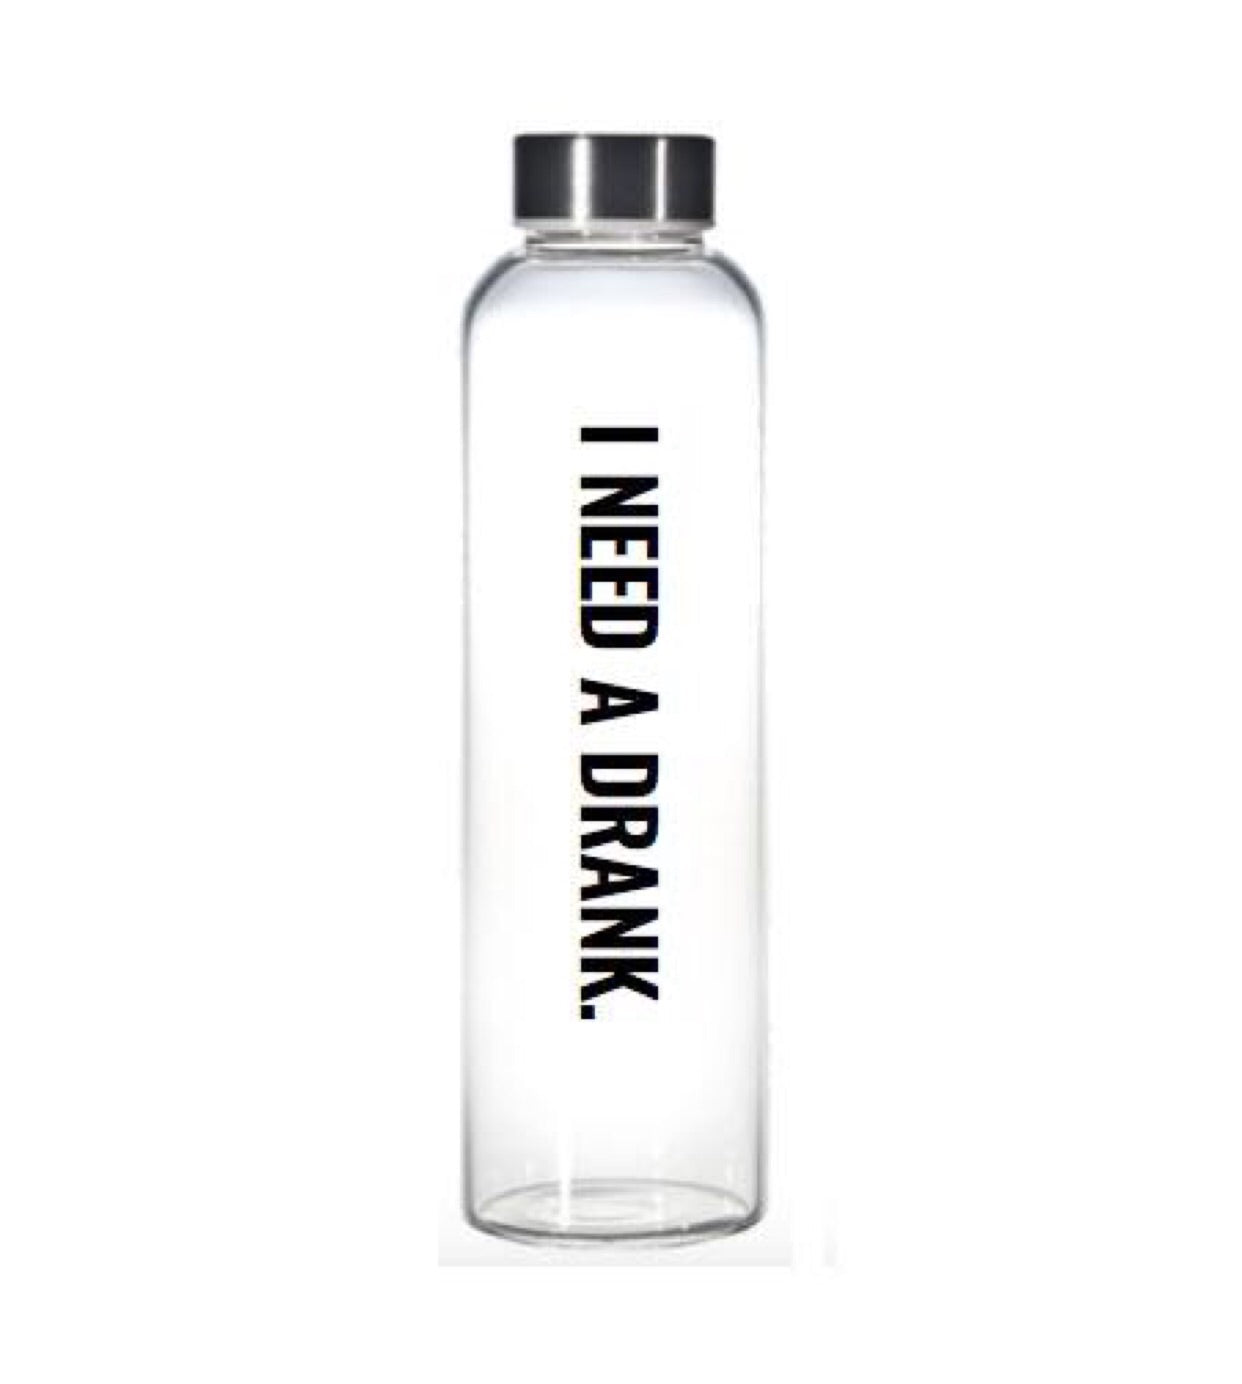 Drank glass water bottle